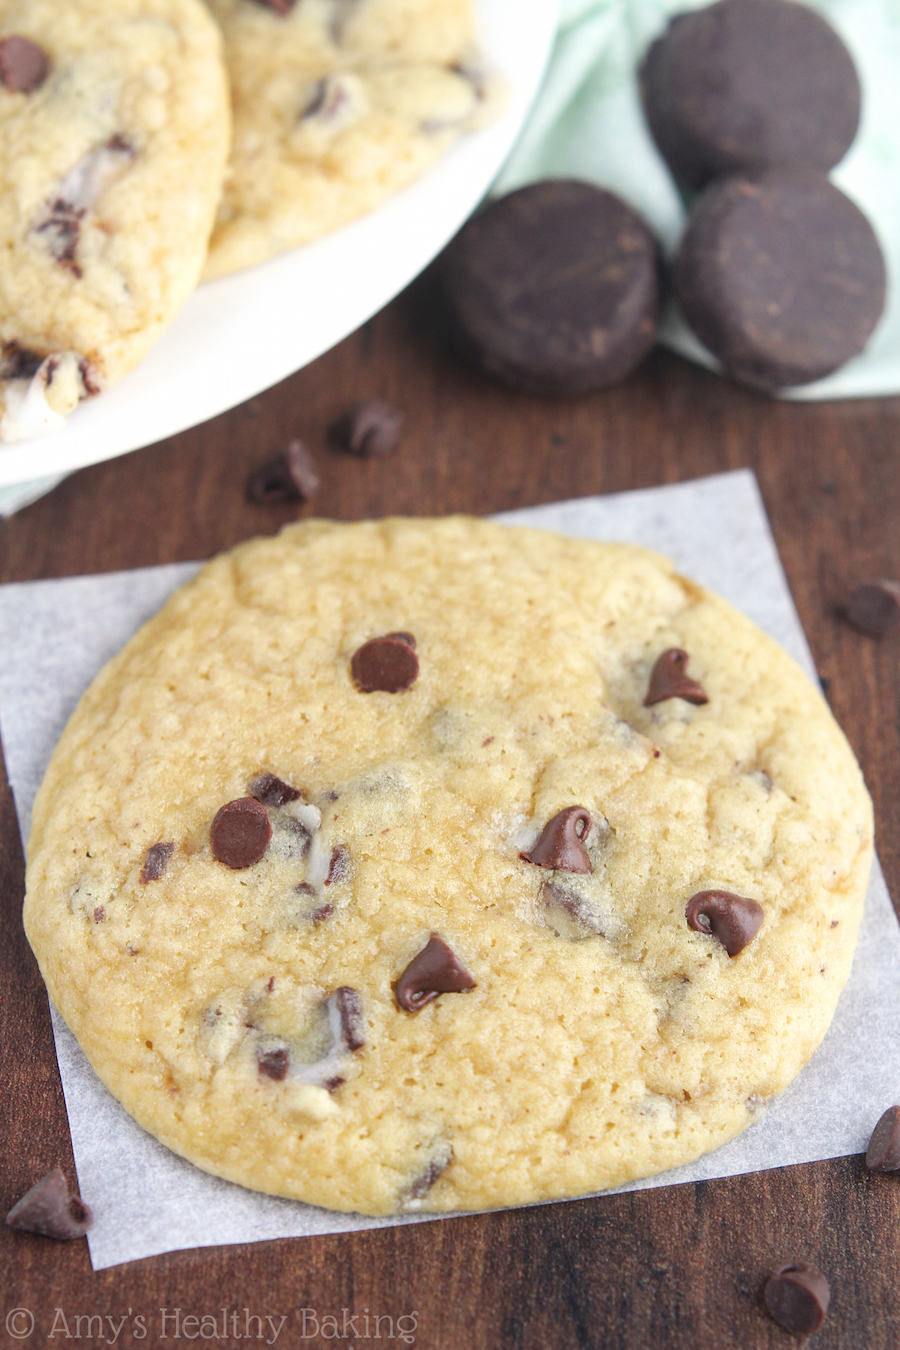 Mint Chocolate Chip Cookies | Amy's Healthy Baking